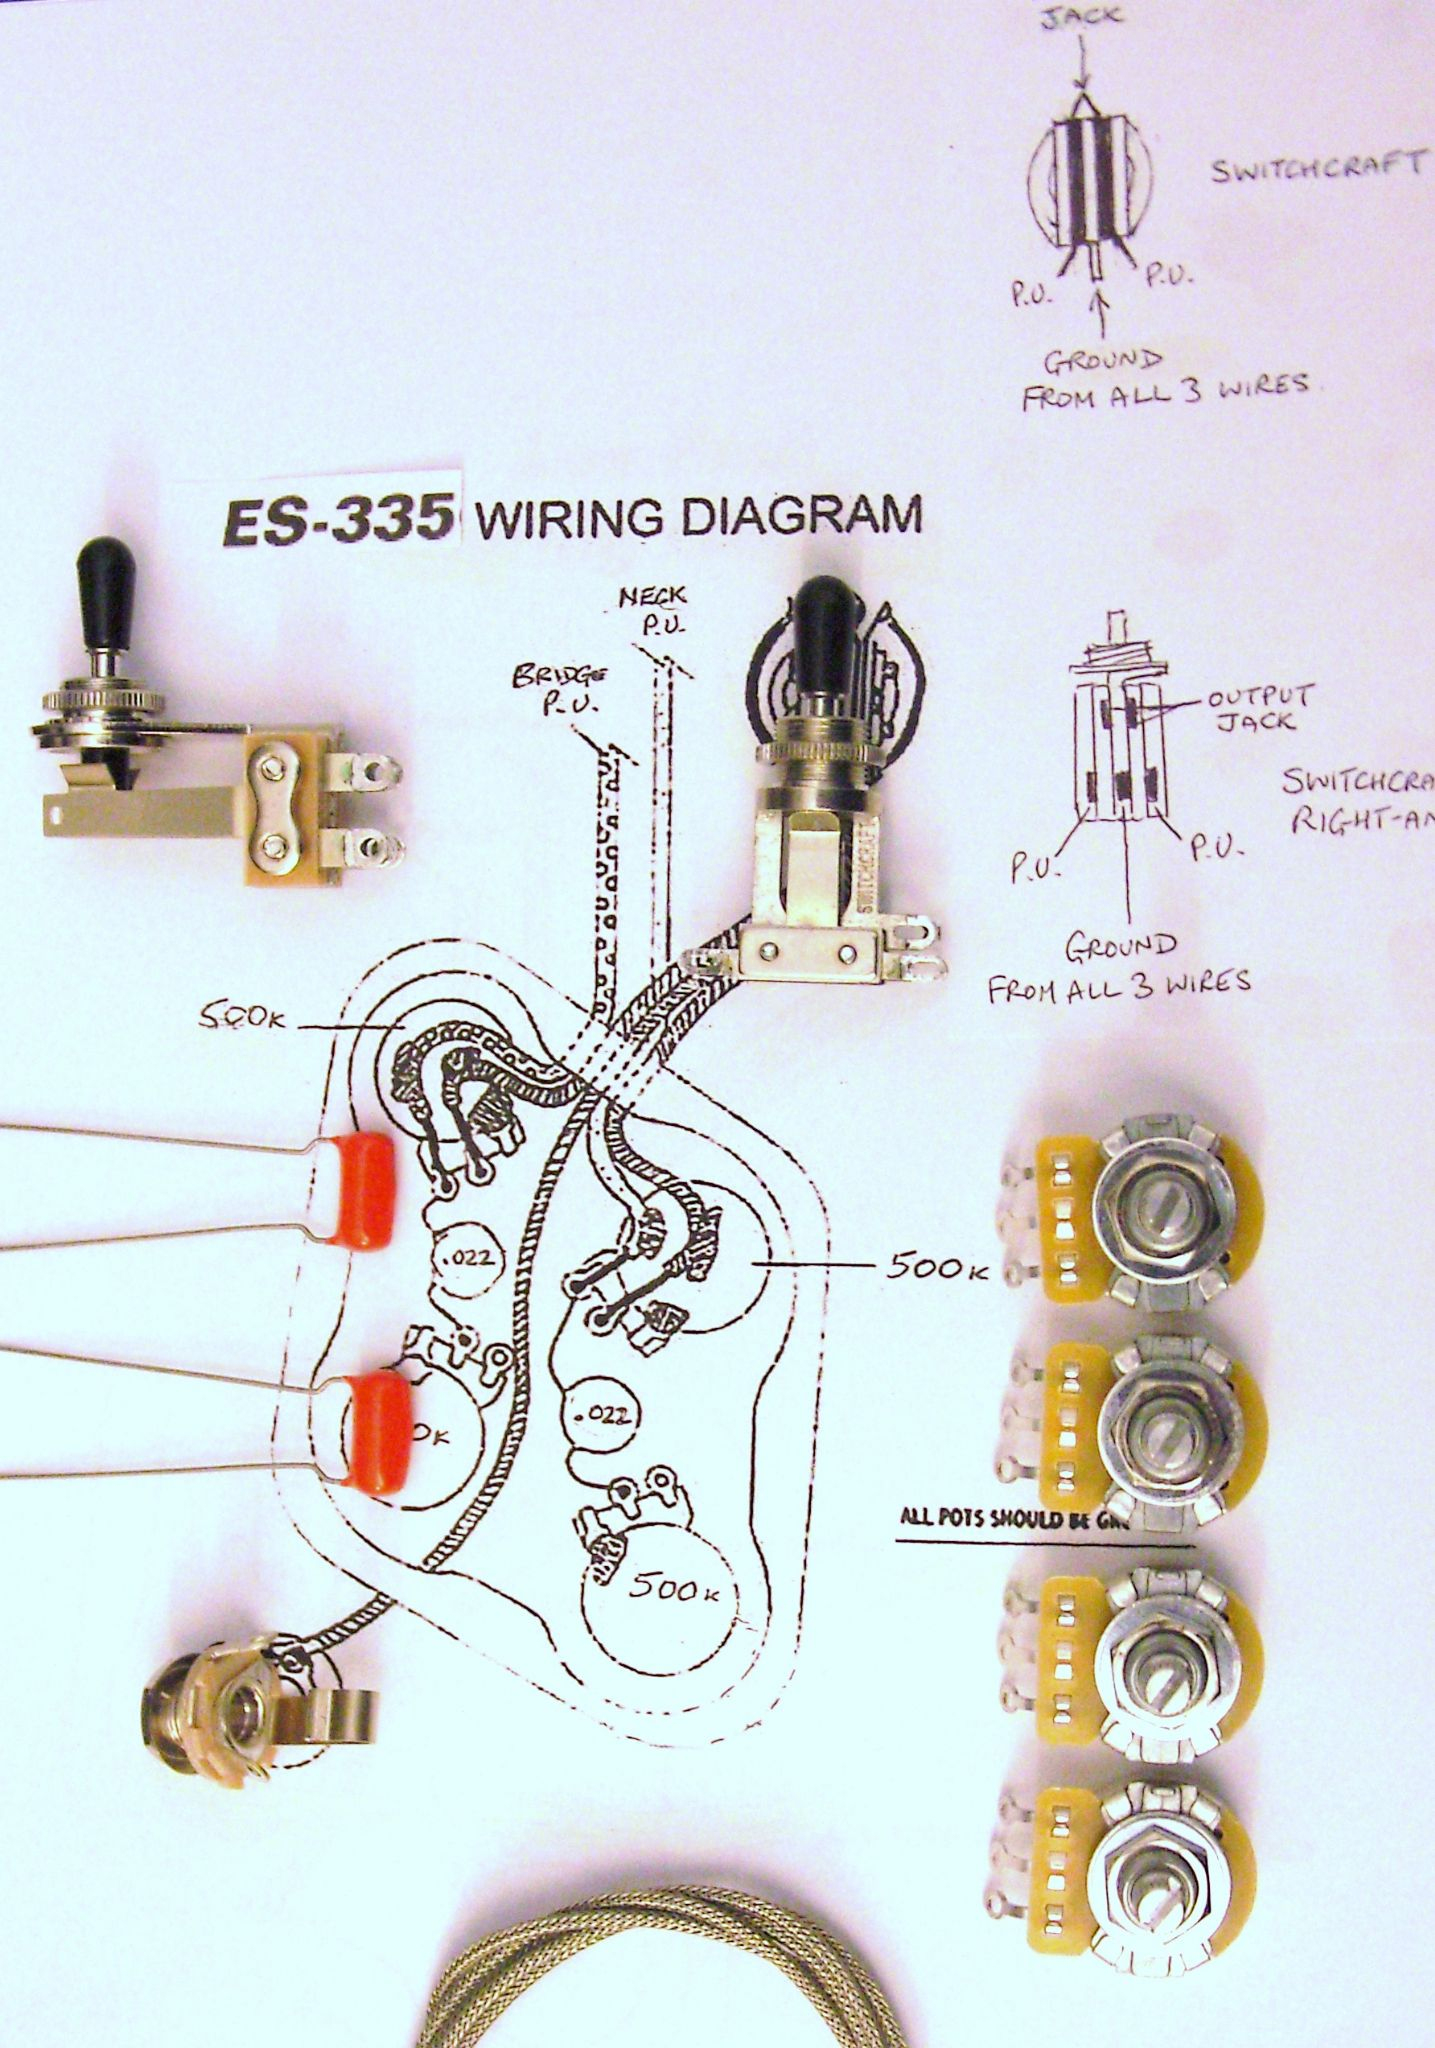 Switchcraft Toggle Switch Wiring Diagram - Not Lossing Wiring Diagram • - 3 Position Toggle Switch Wiring Diagram